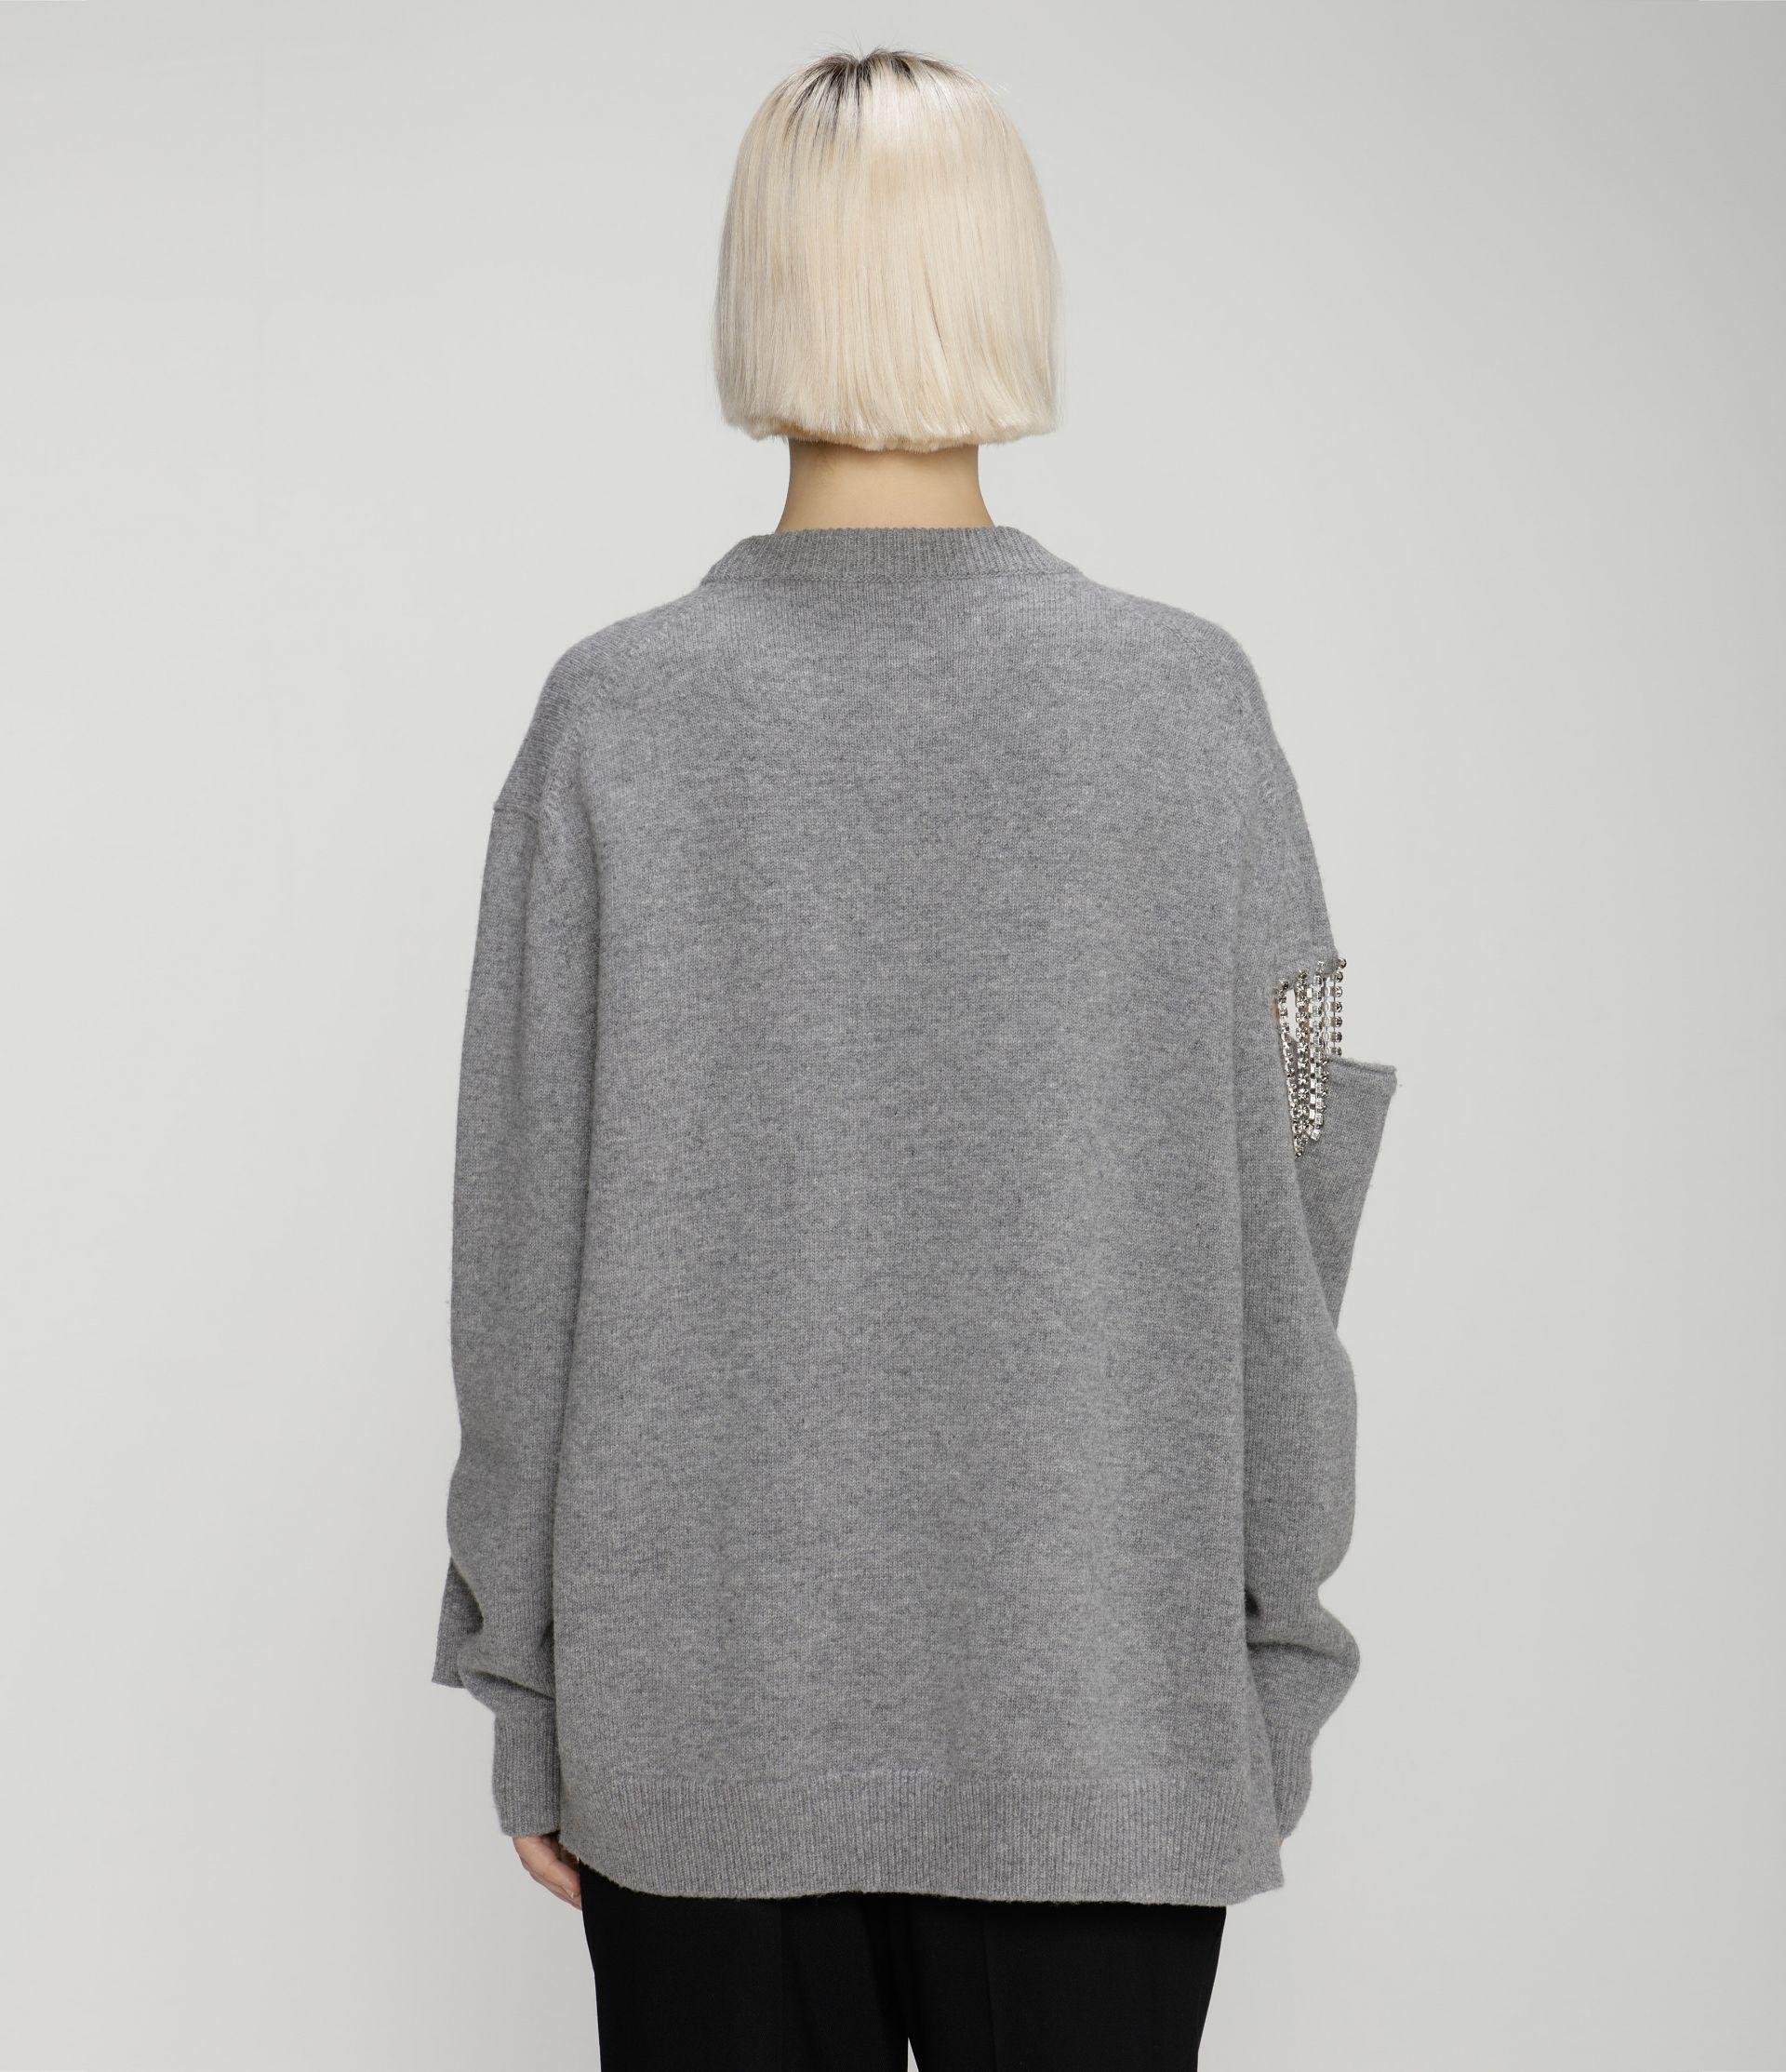 cut-out cupchain knitted sweater 2